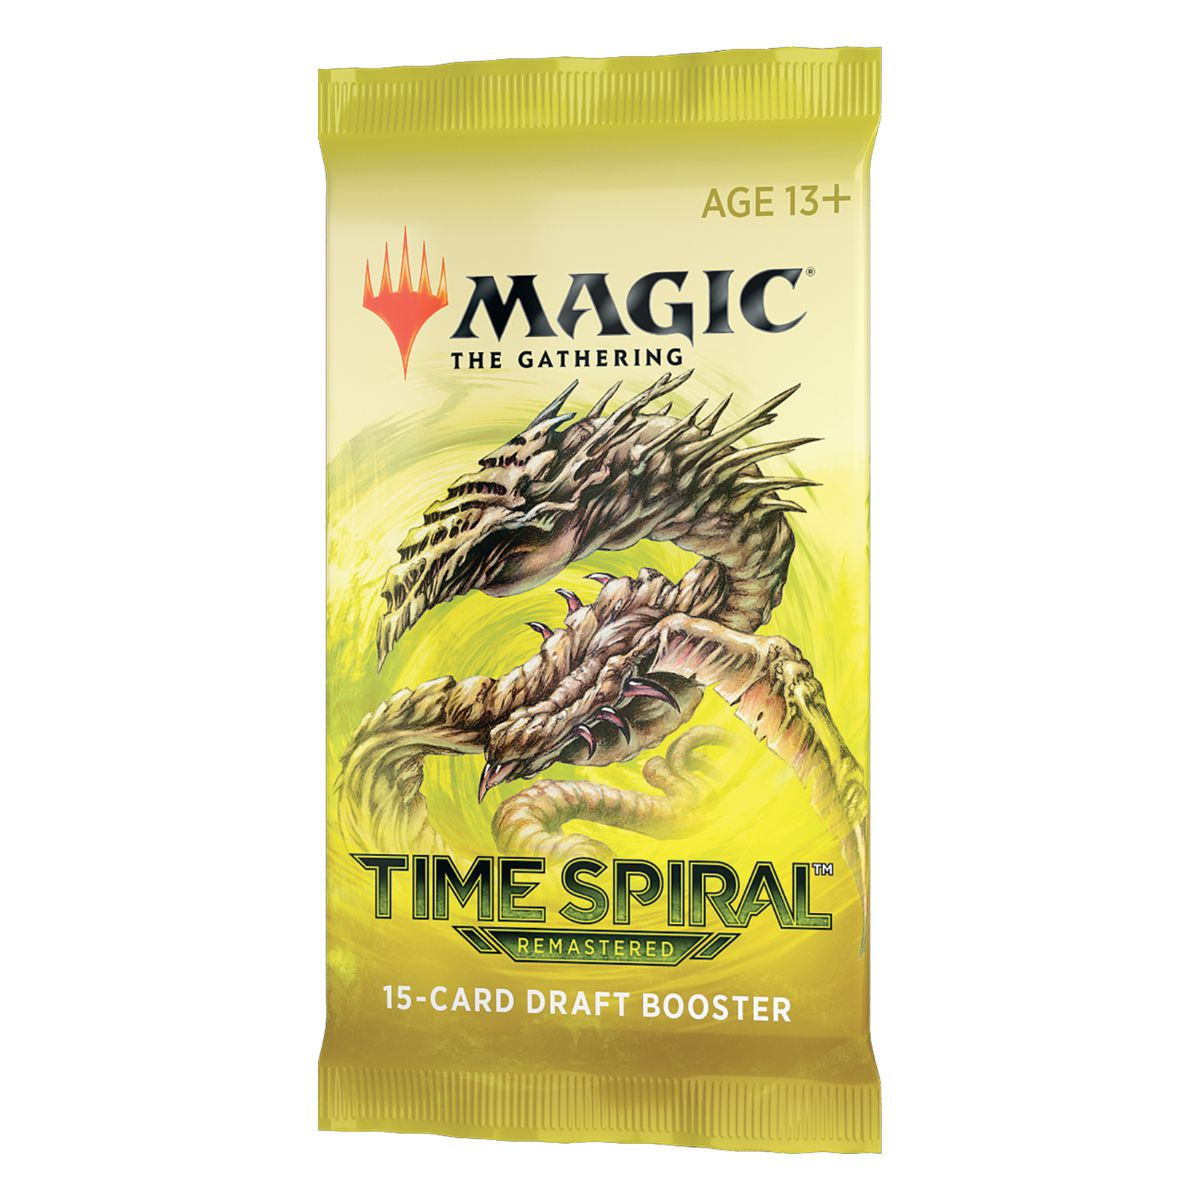 Magic the Gathering: Time Spiral Remastered Booster Pack